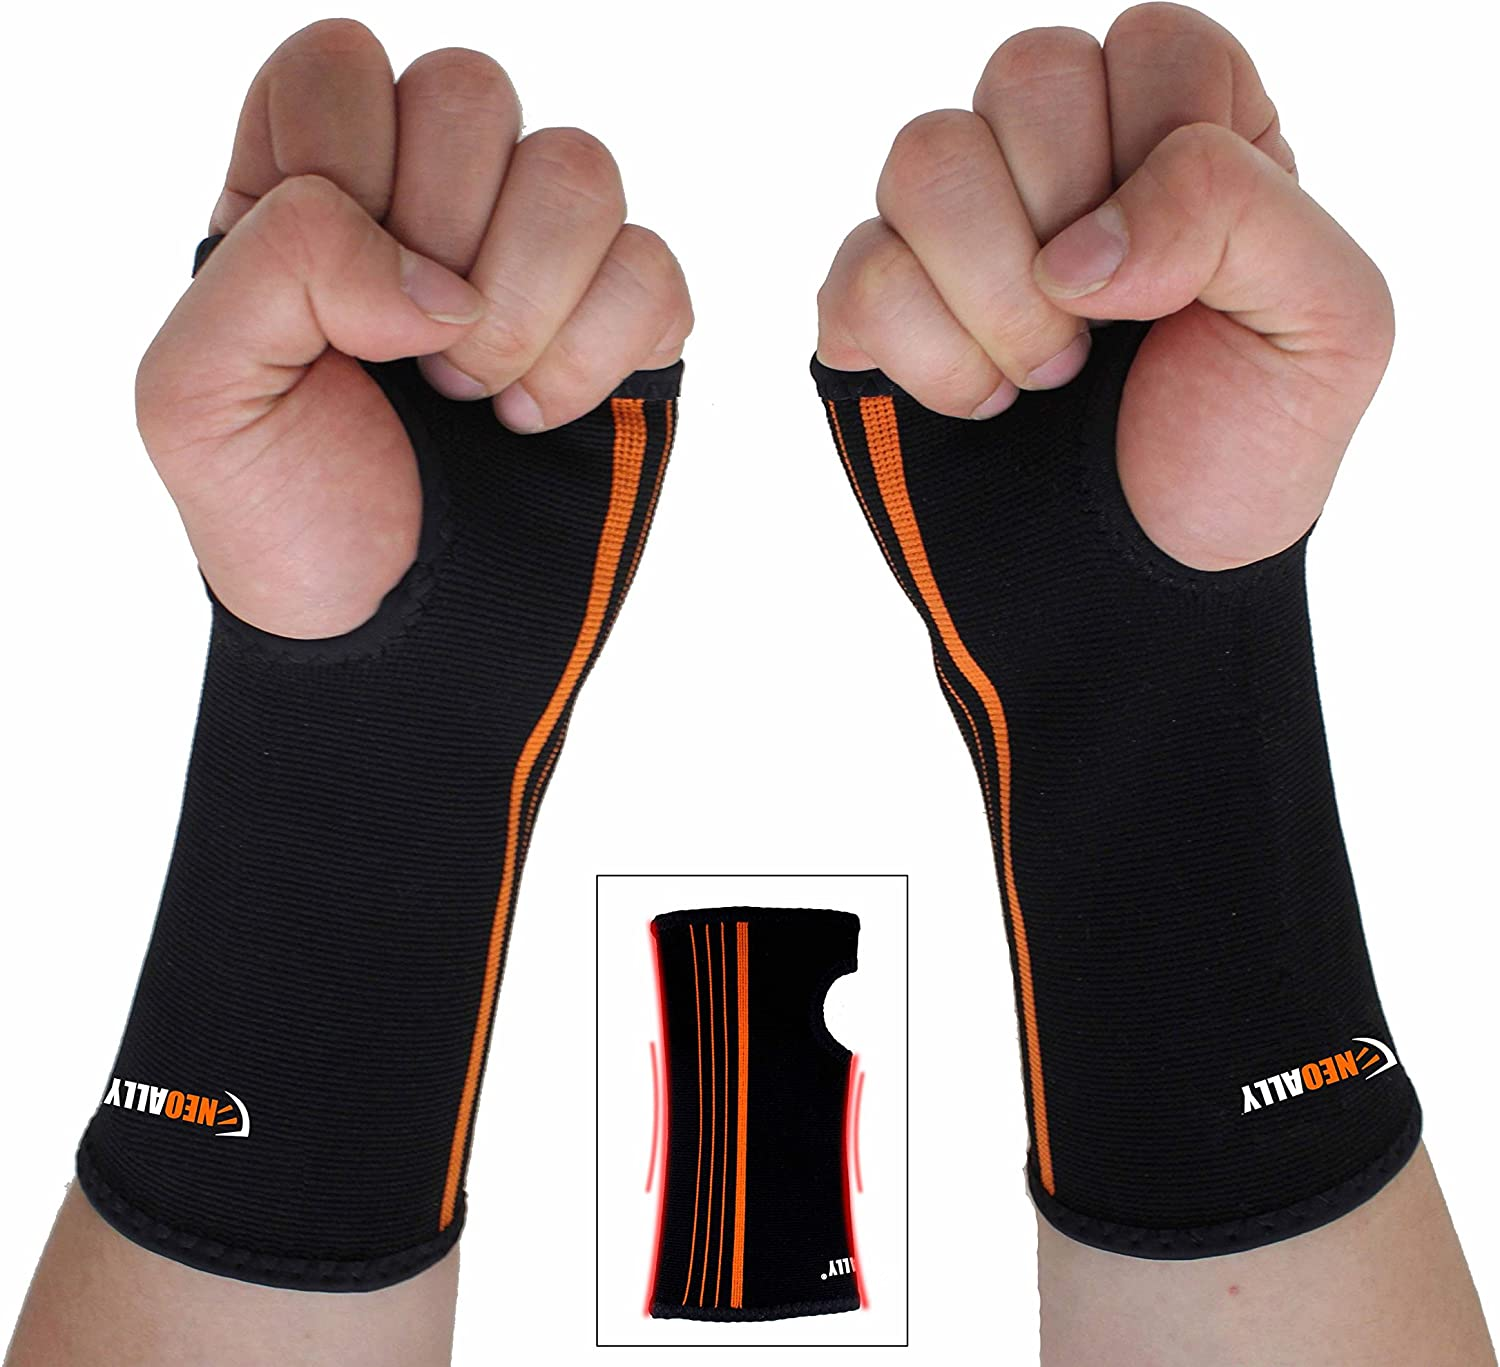 NeoAlly Wrist and Forearm Compression Sleeve, Support Brace for Carpal Tunnel, Arthritis, Tendonitis, Bursitis and Wrist Sprain, Small, 2-Pack